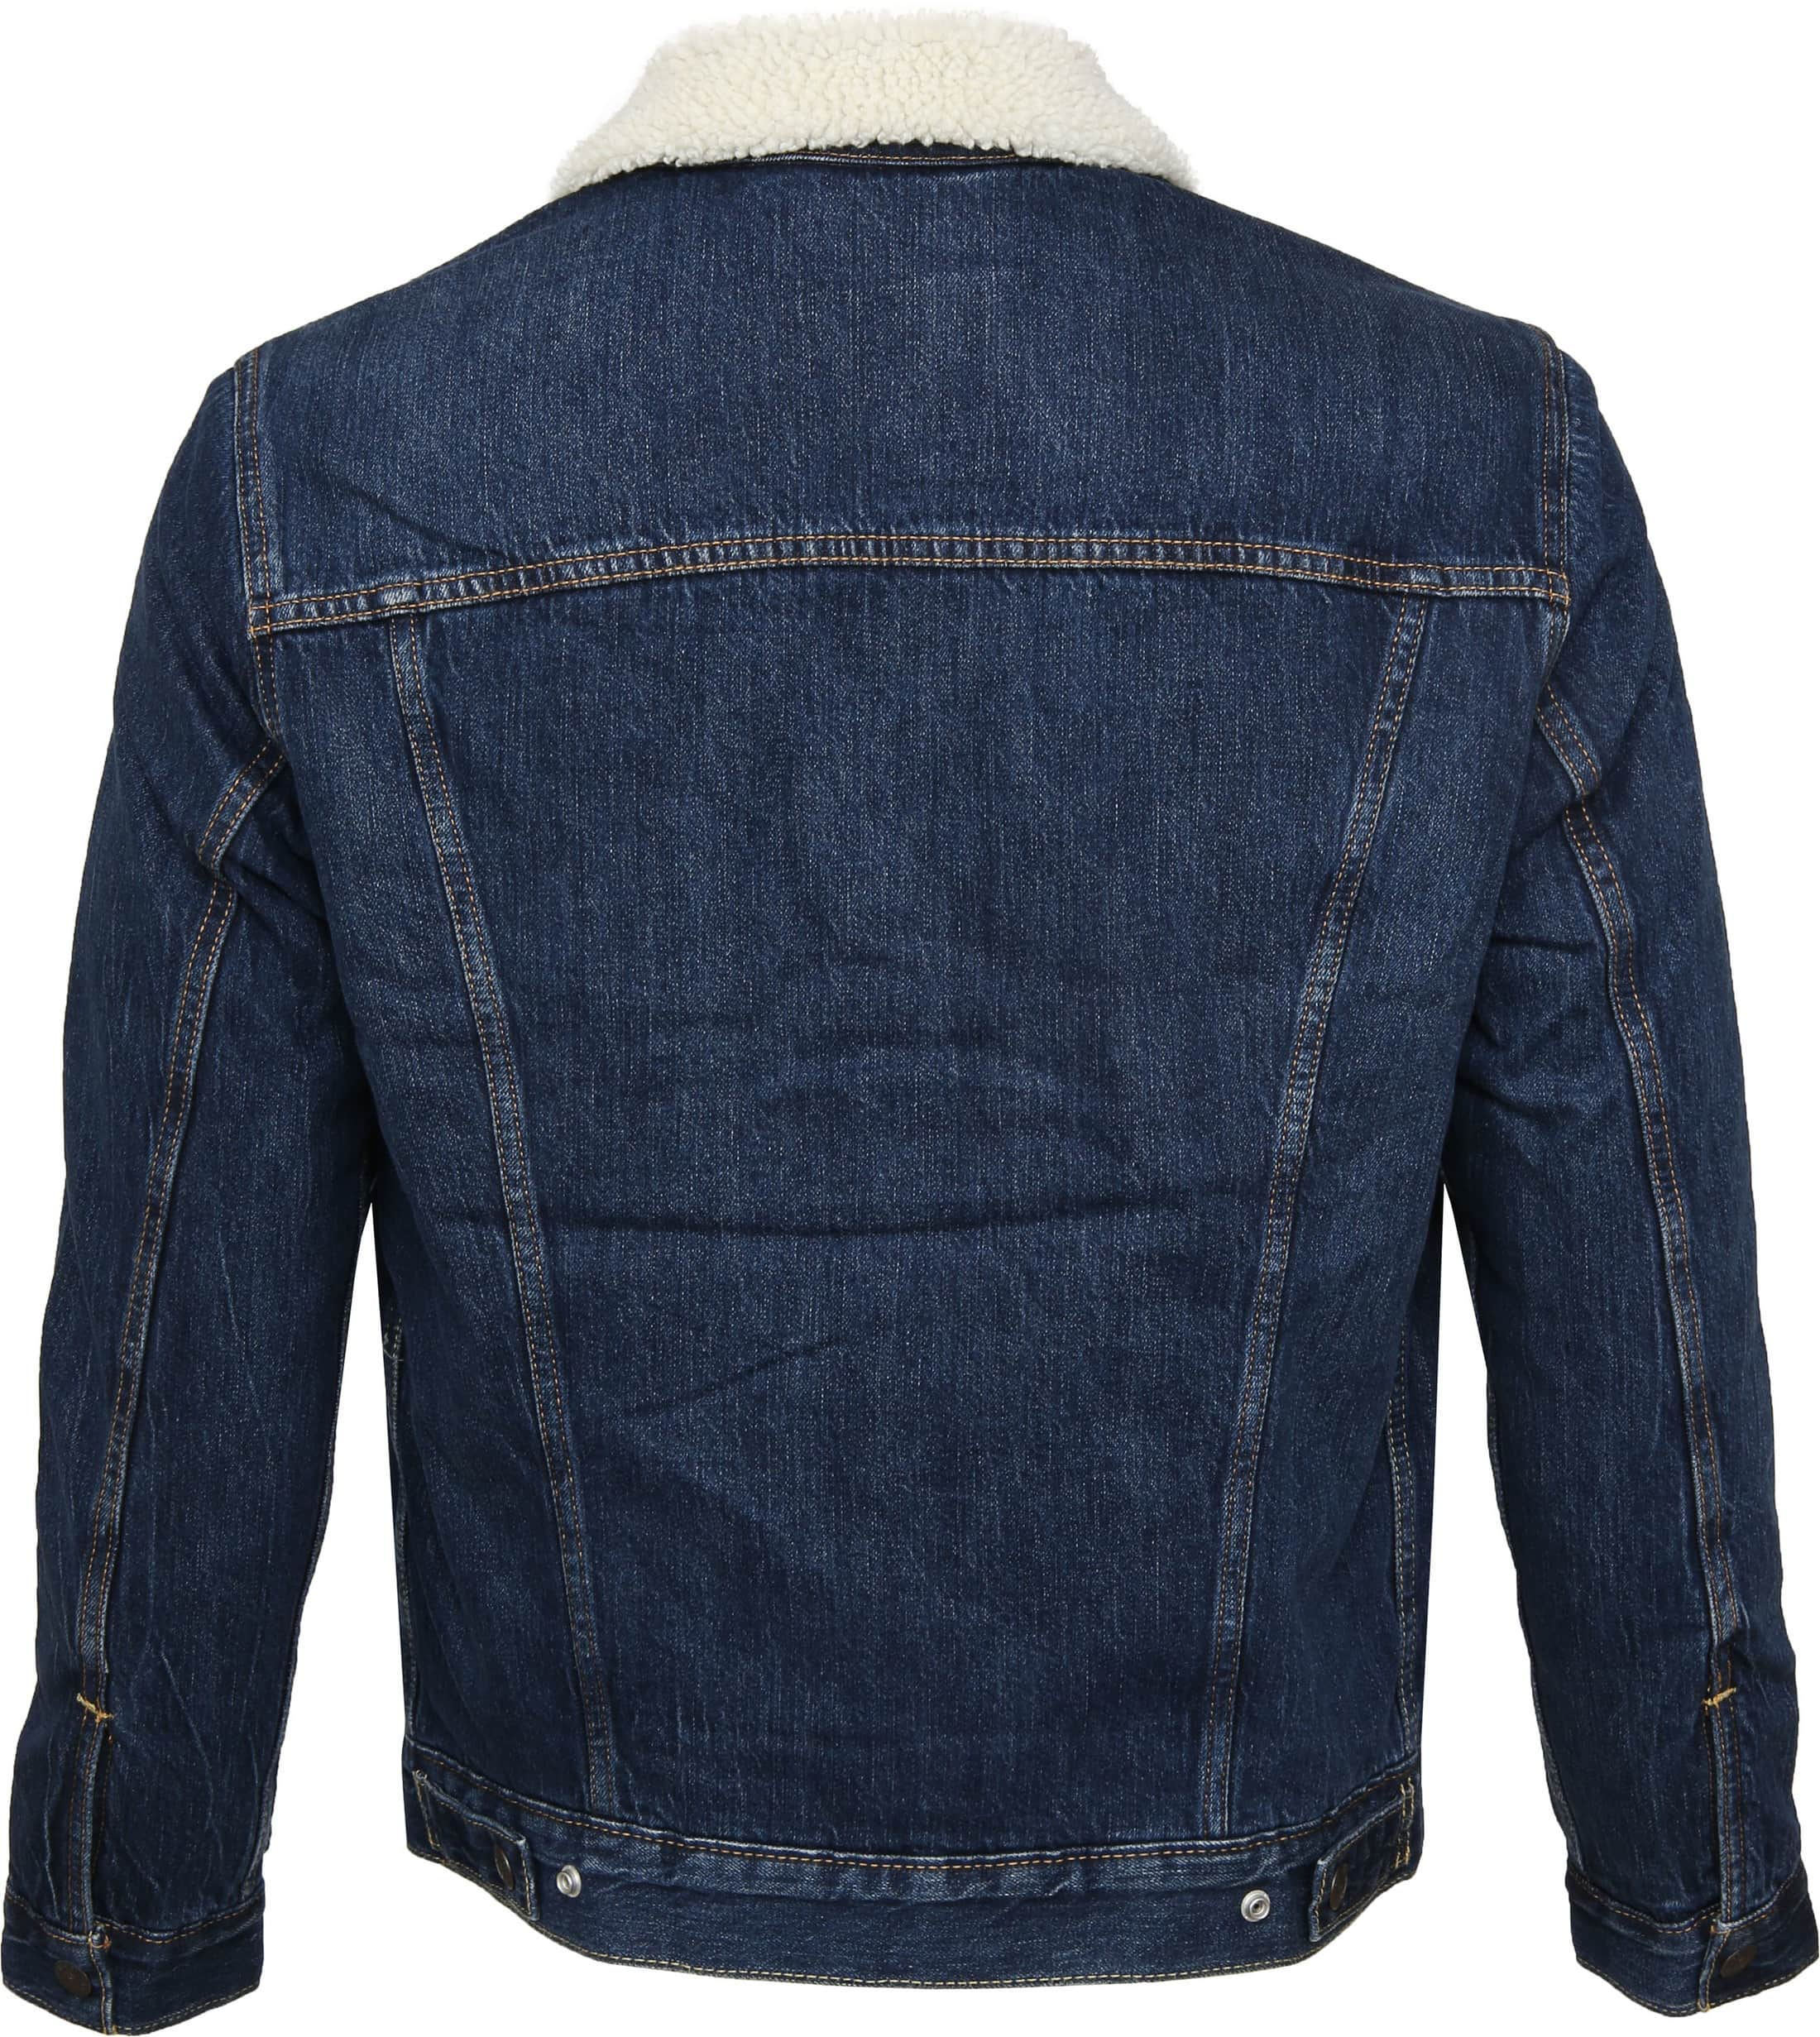 Levi's Trucker Jacket Navy photo 4